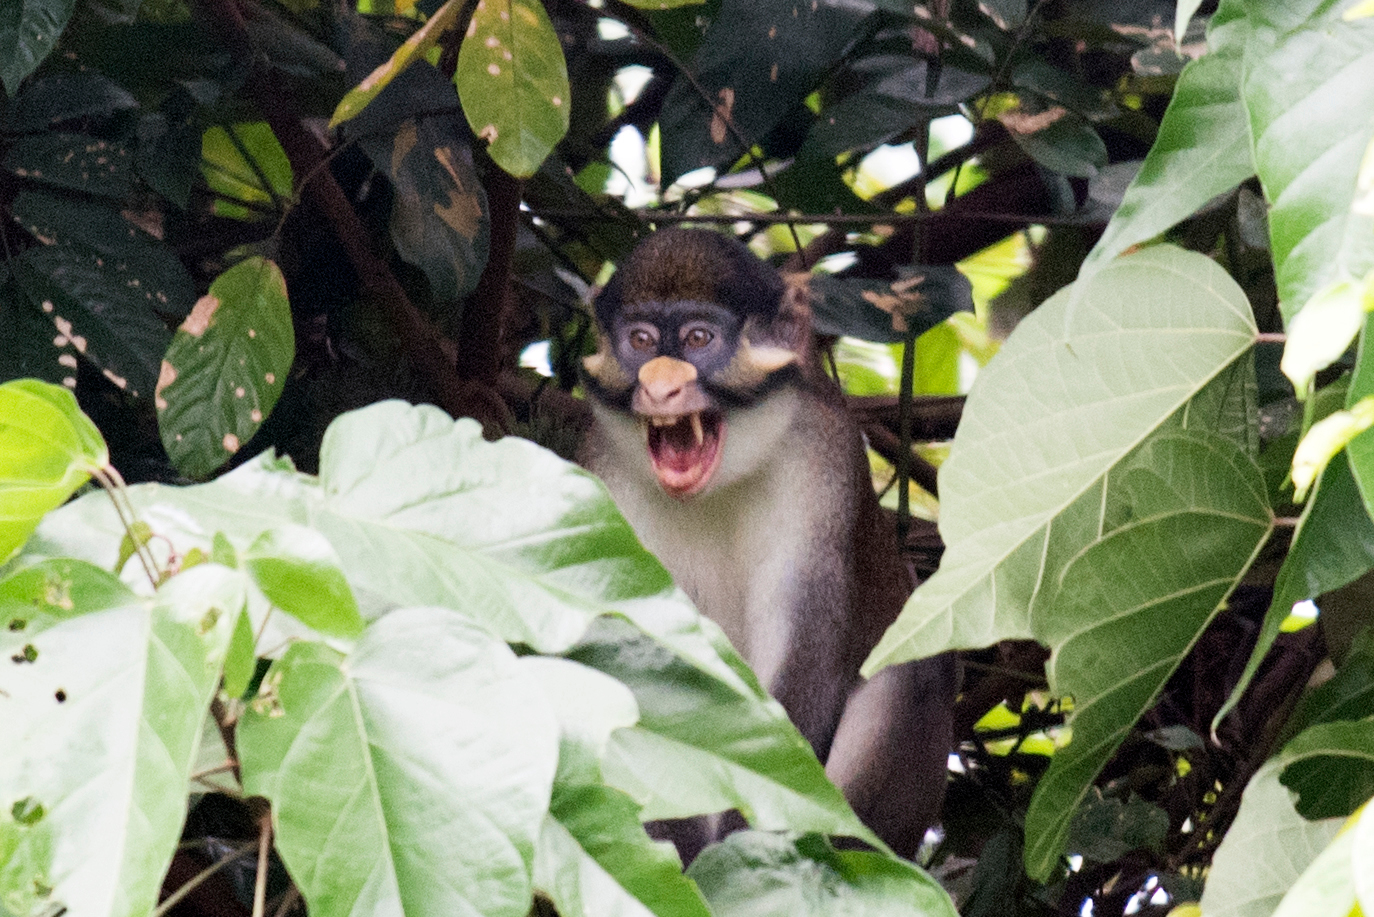 A red-tailed monkey sitting on a branch in a lush forest. It's mouth is open as if it's uttering a loud call.